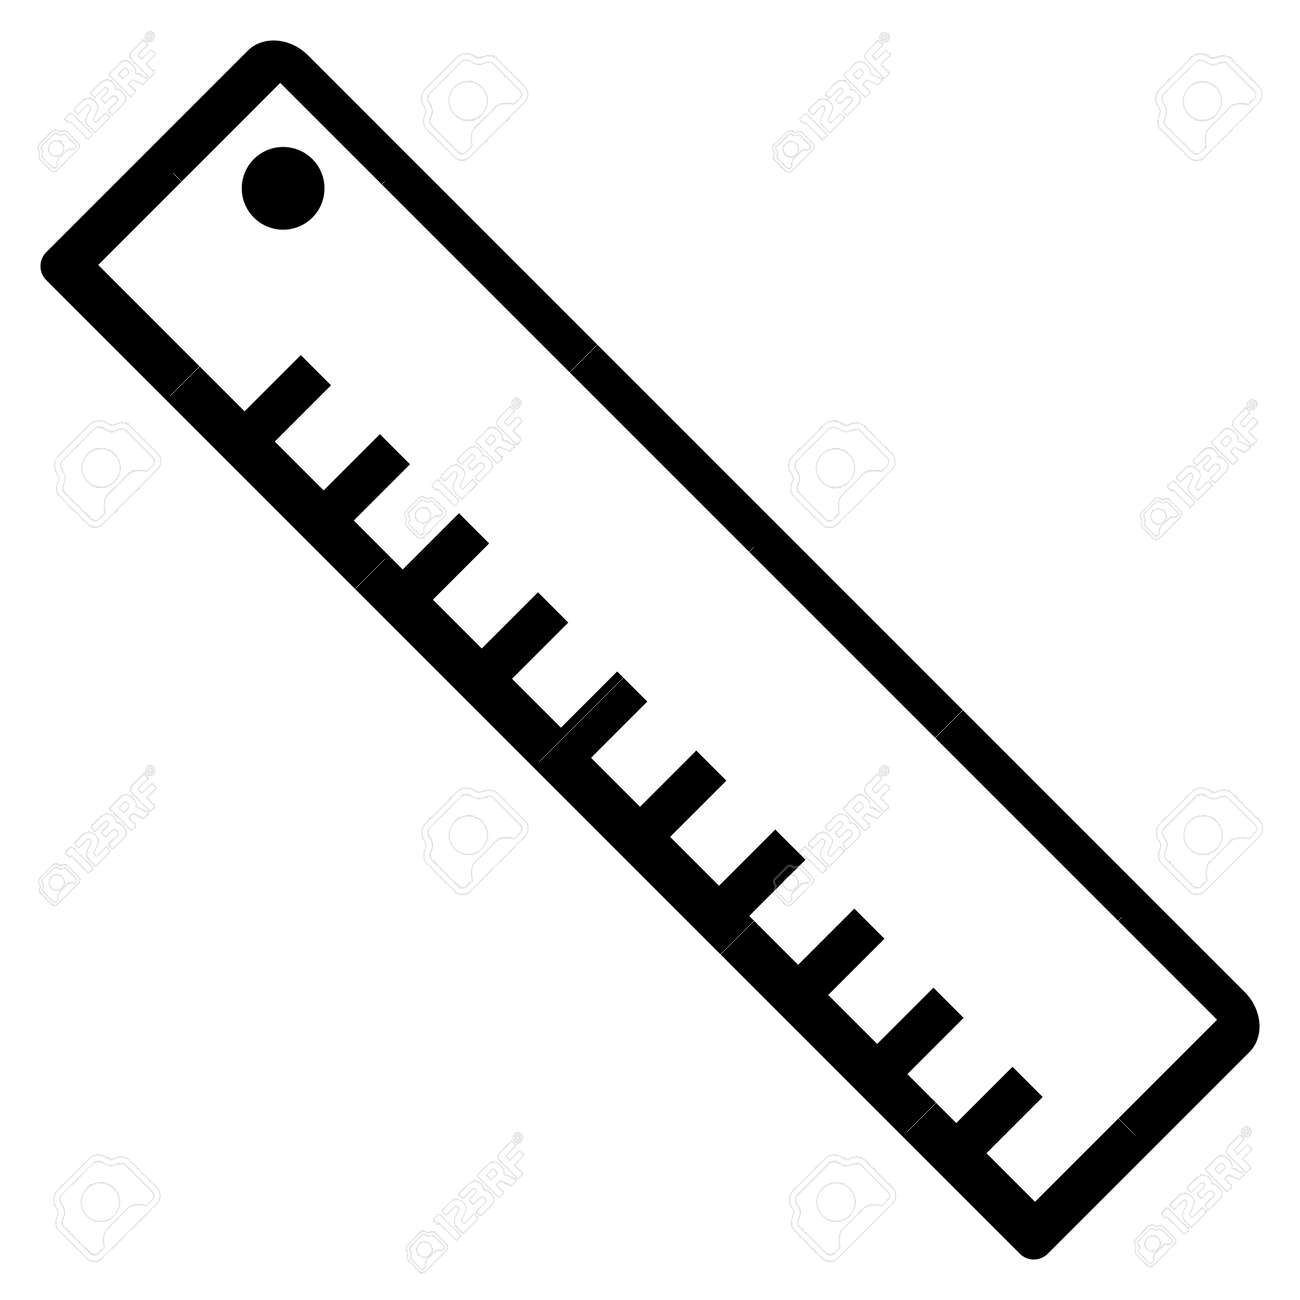 length ruler vector icon royalty free cliparts vectors and stock rh 123rf com ruler vector free ruler vector generator